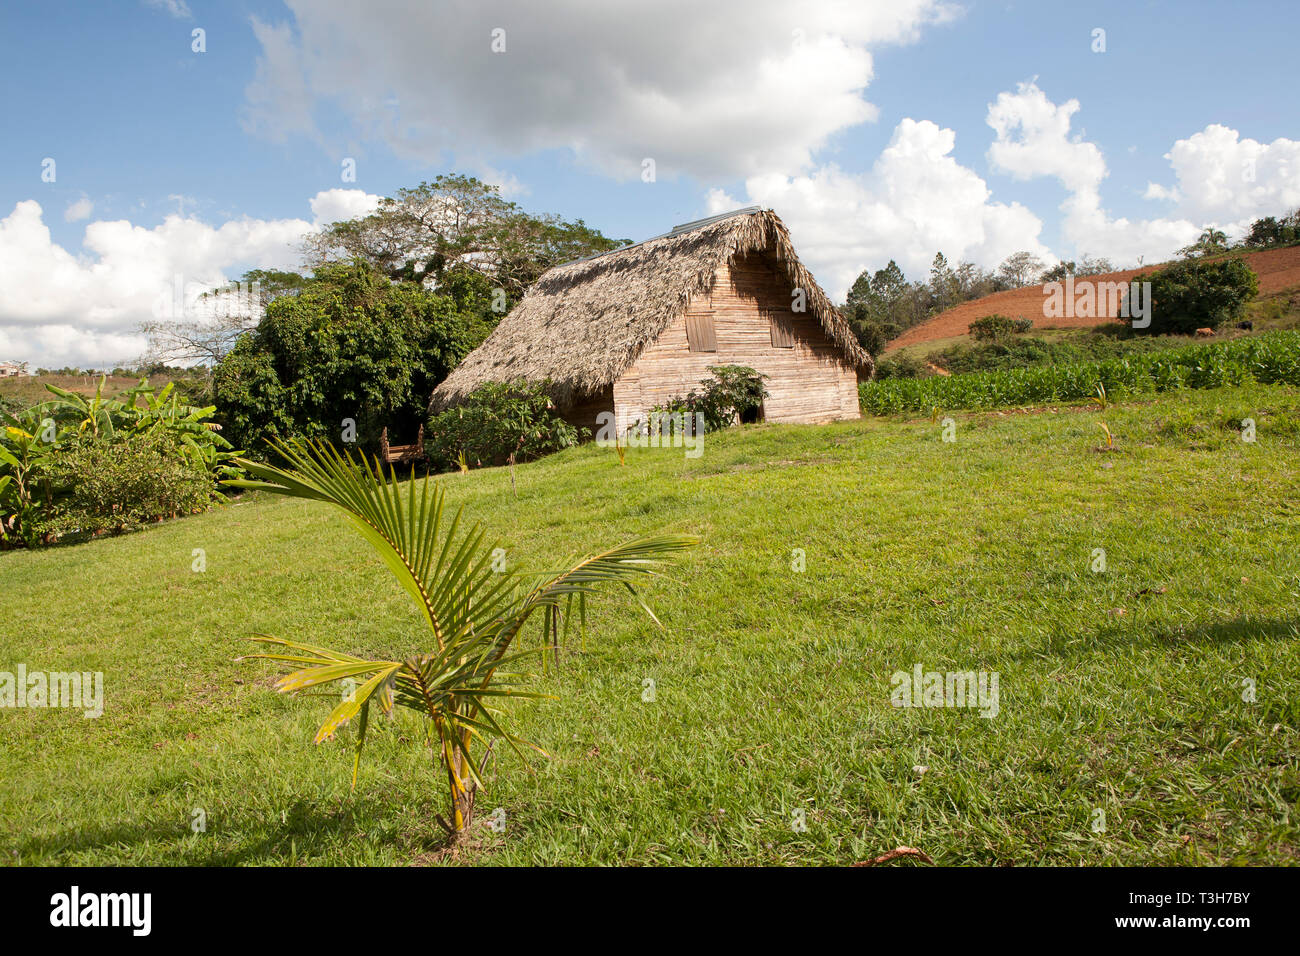 Tobacco farming in Cuba, drying huts, close up of Tobacco plants and leaves growing - Stock Image